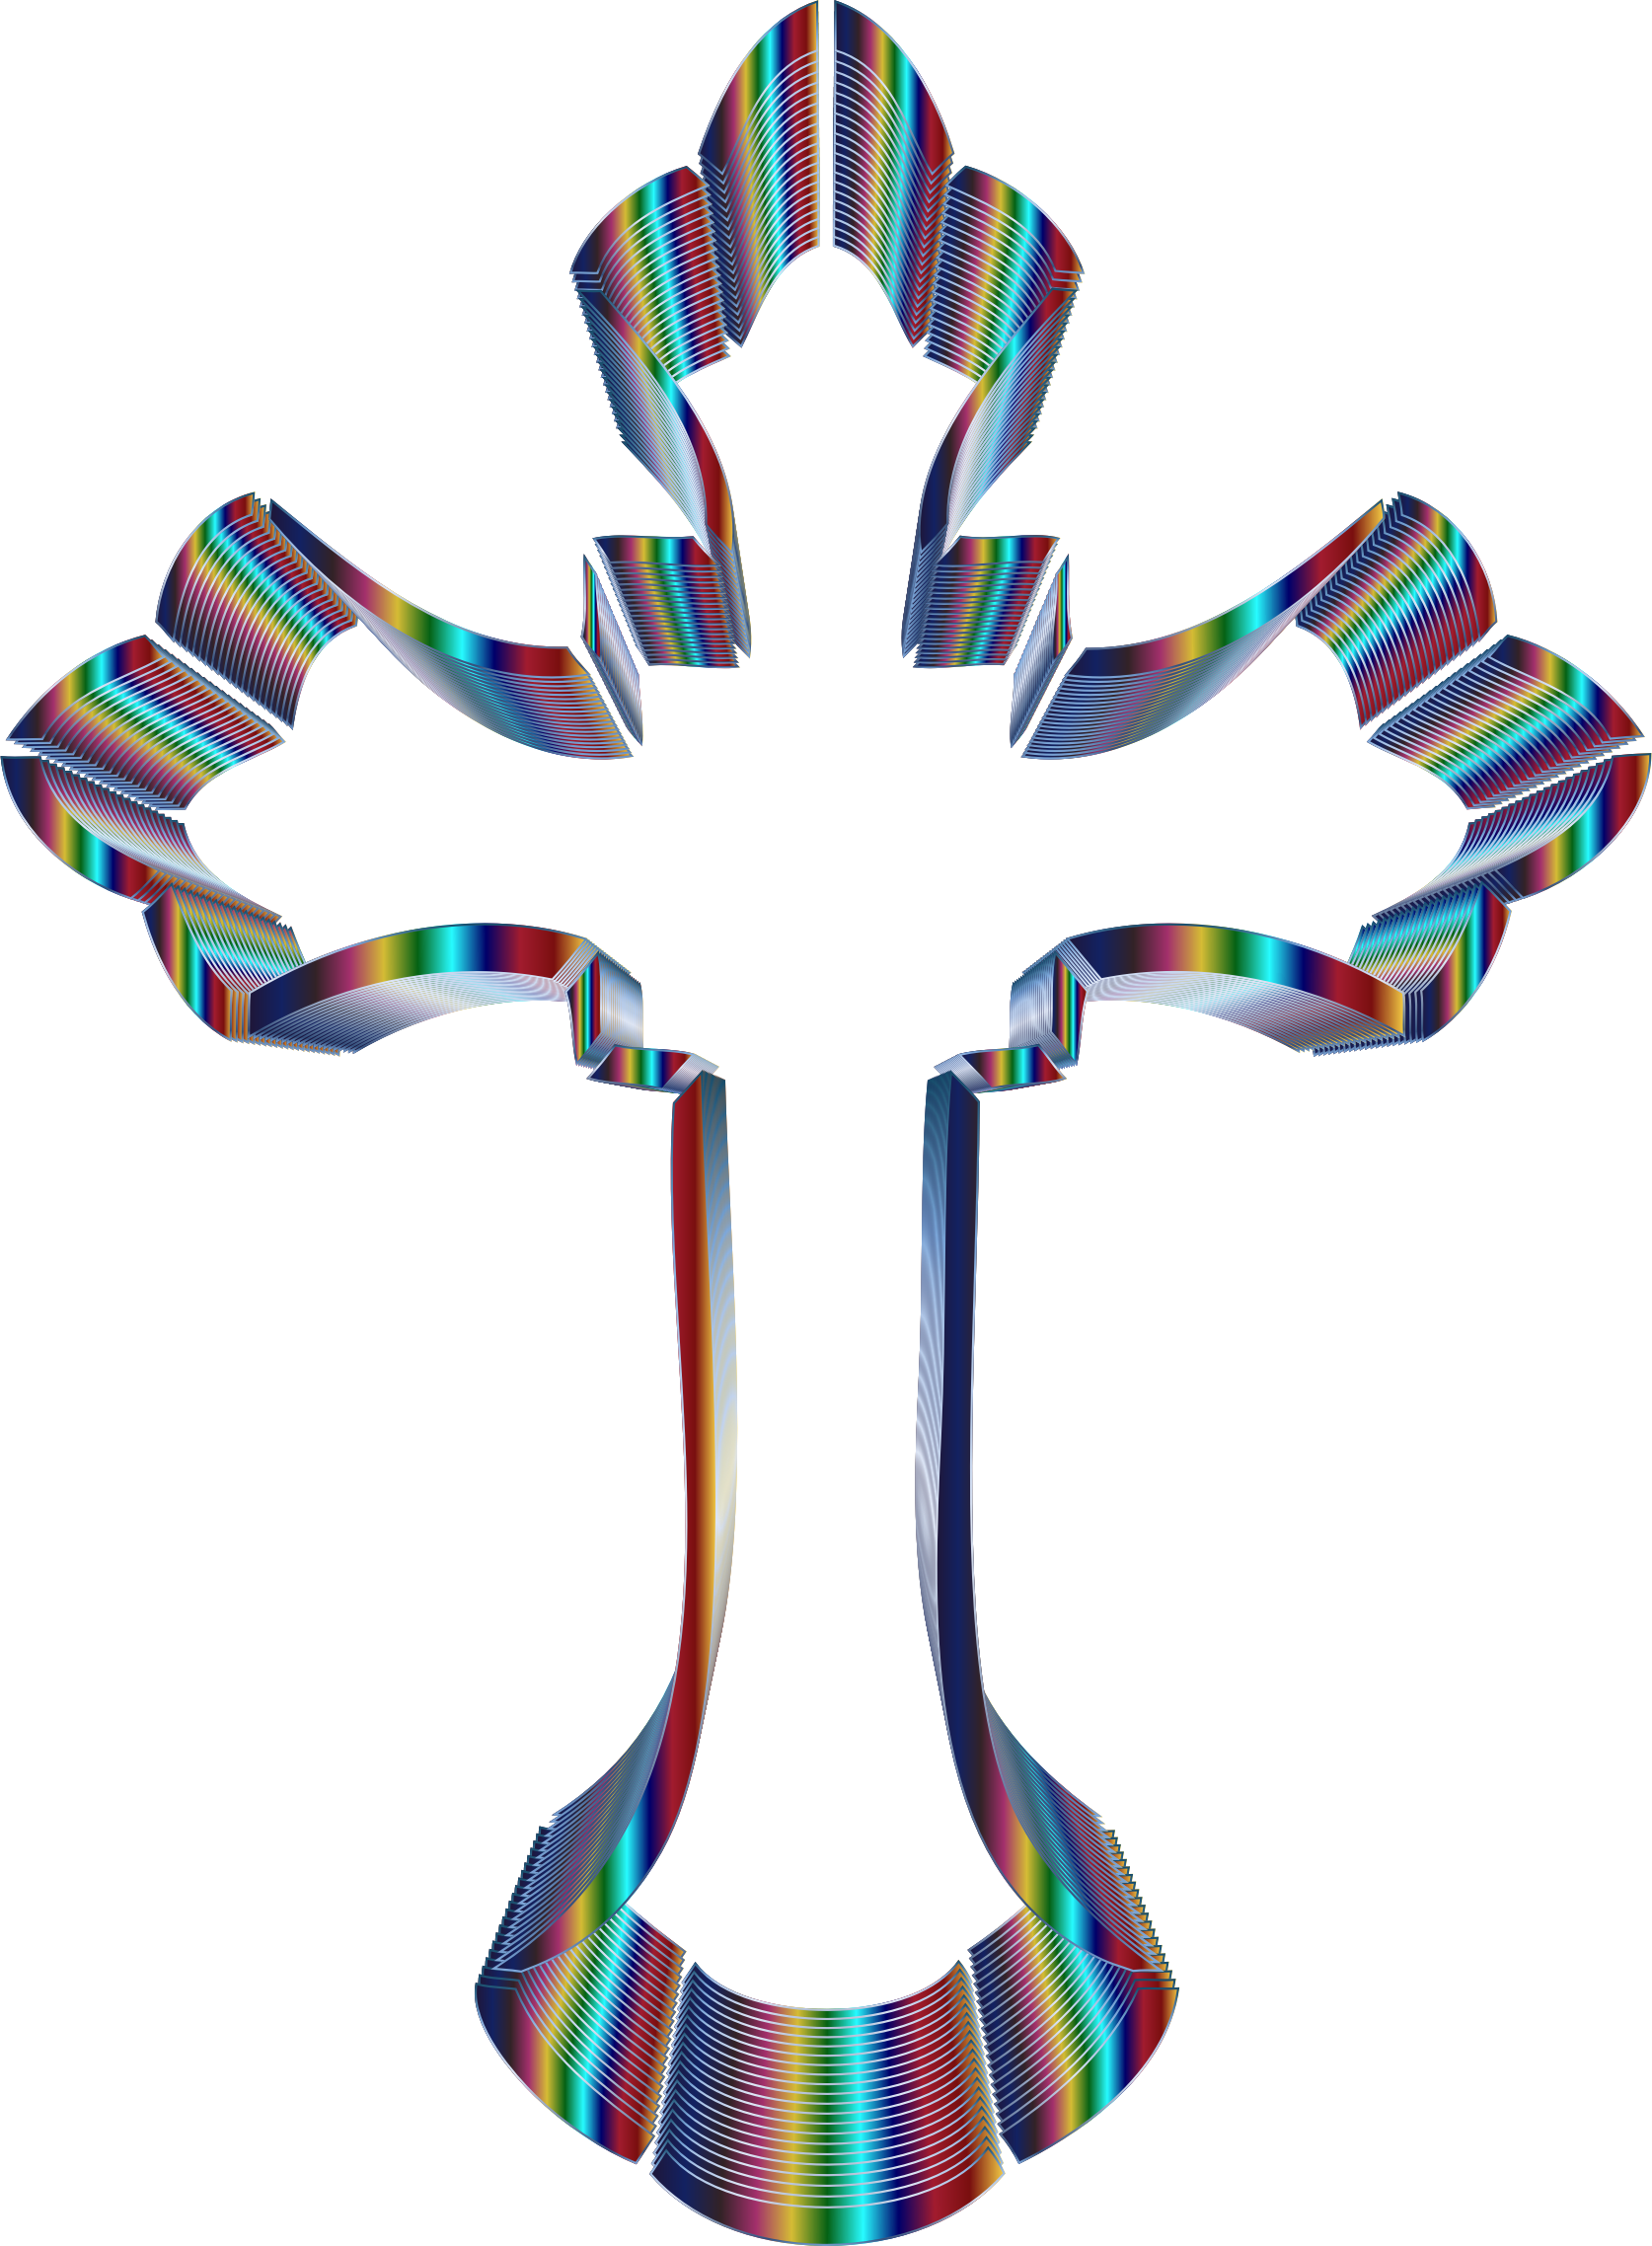 Iridescent Ornate Cross No Background by GDJ